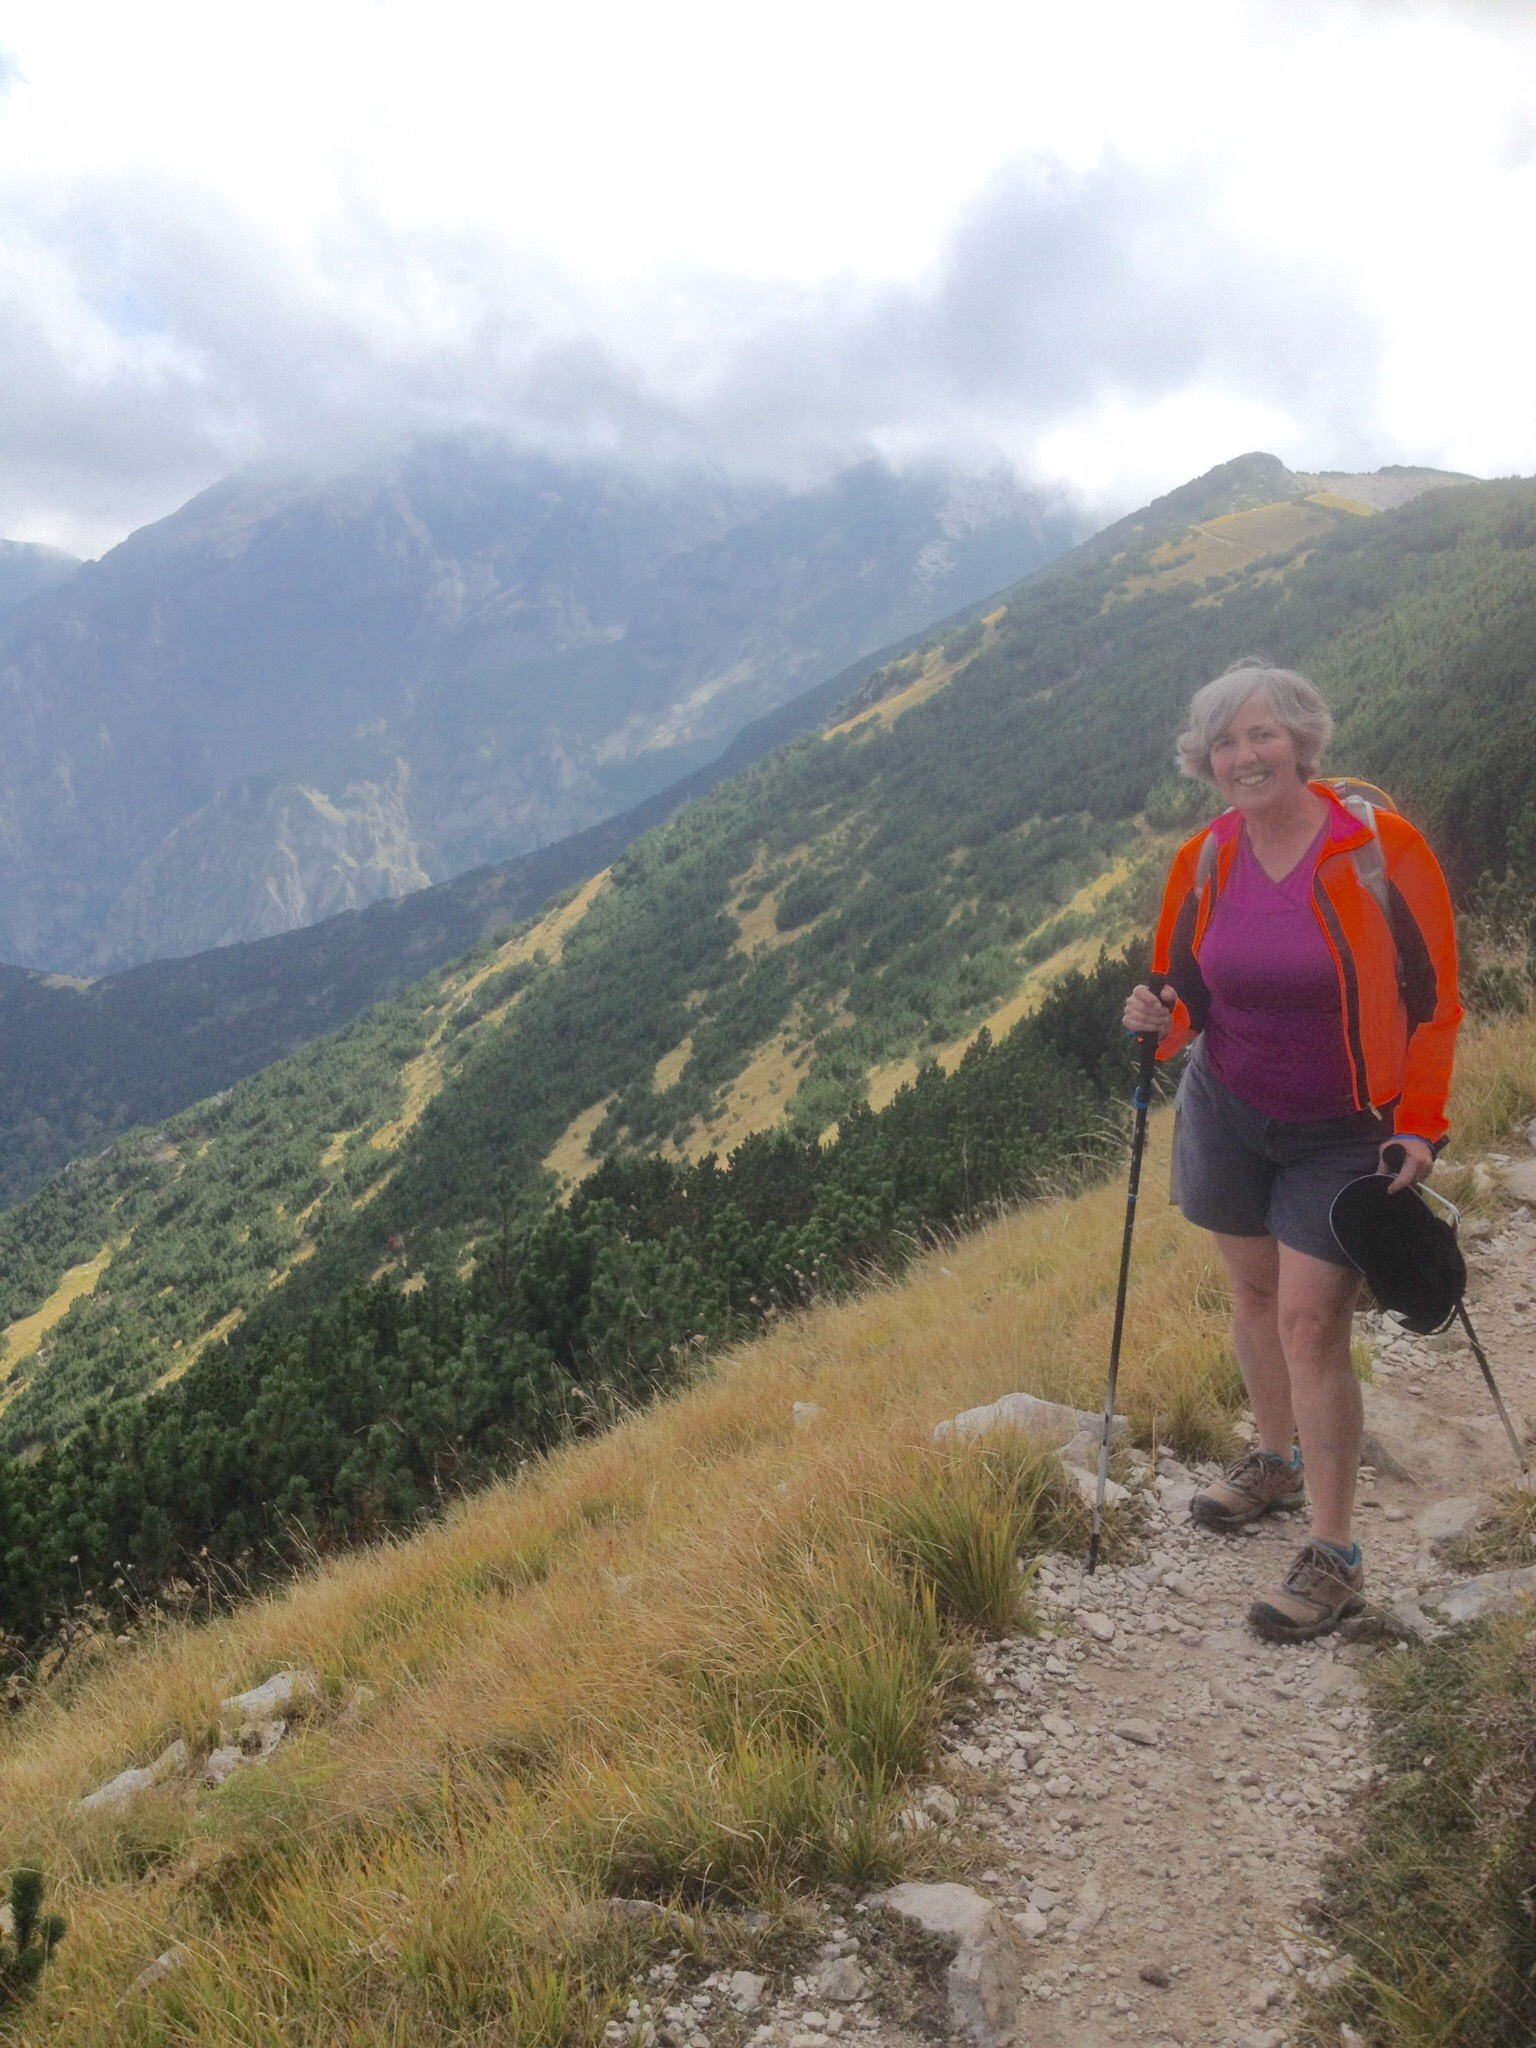 Five stars. Just returned from an incredible week with Lisa, Jake and all the warm and wonderful people at Villa d'Abruzzo. Cesidia had us in awe of her cooking. Luca kept us active, both physically and mentally, with his great tours. Thanks to all. Debbie Davis, Ottawa